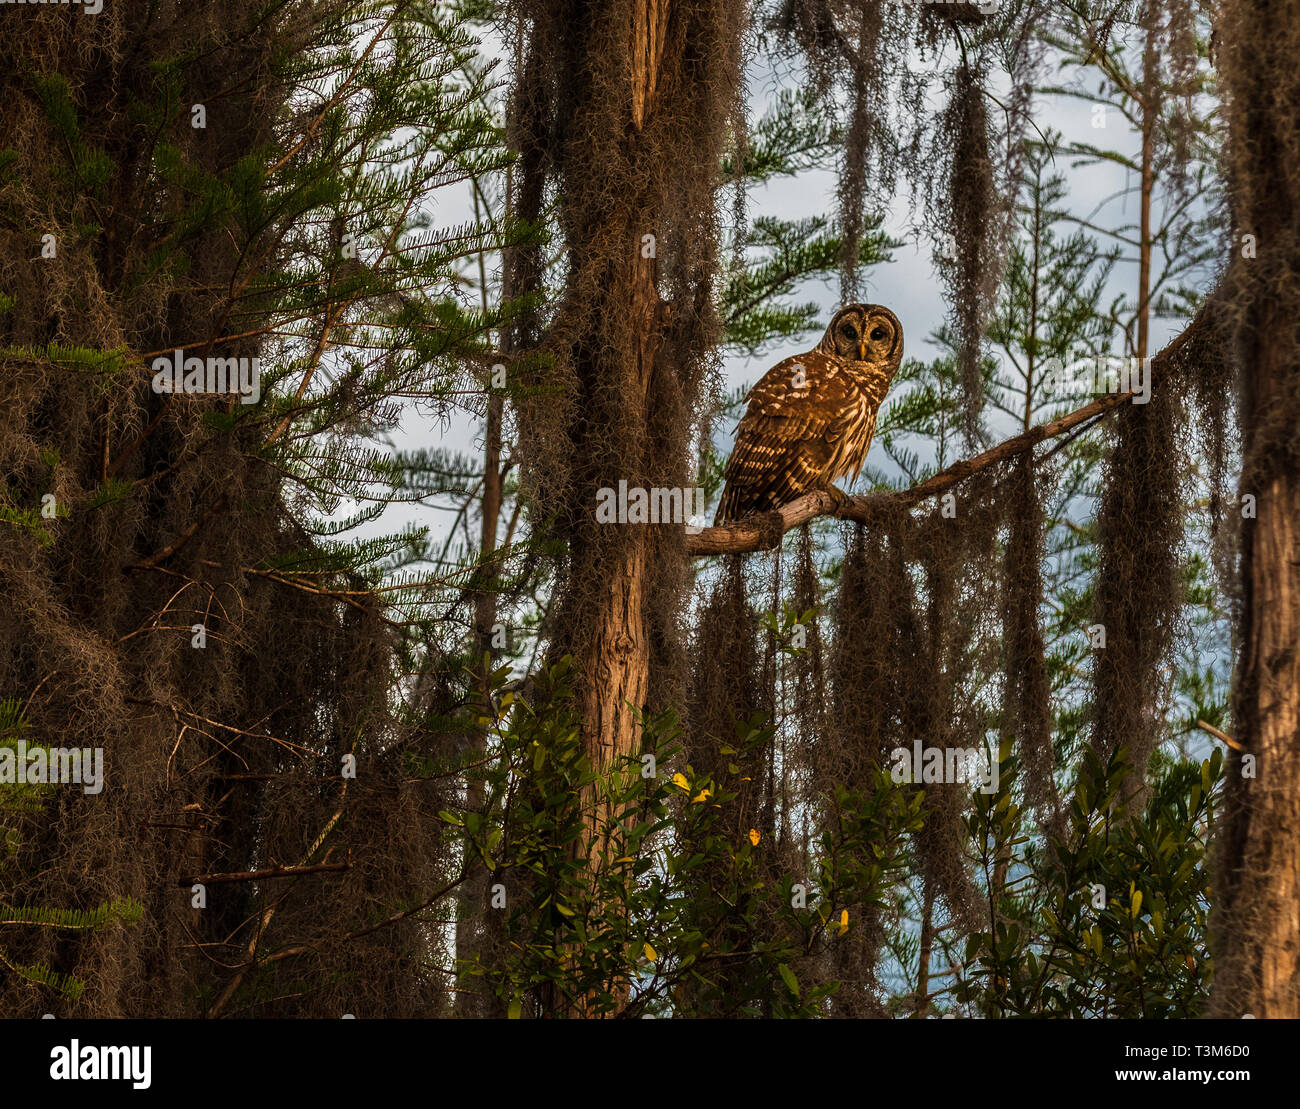 A Barred owl sitting on a limb among trees covered in spanish moss. Stock Photo